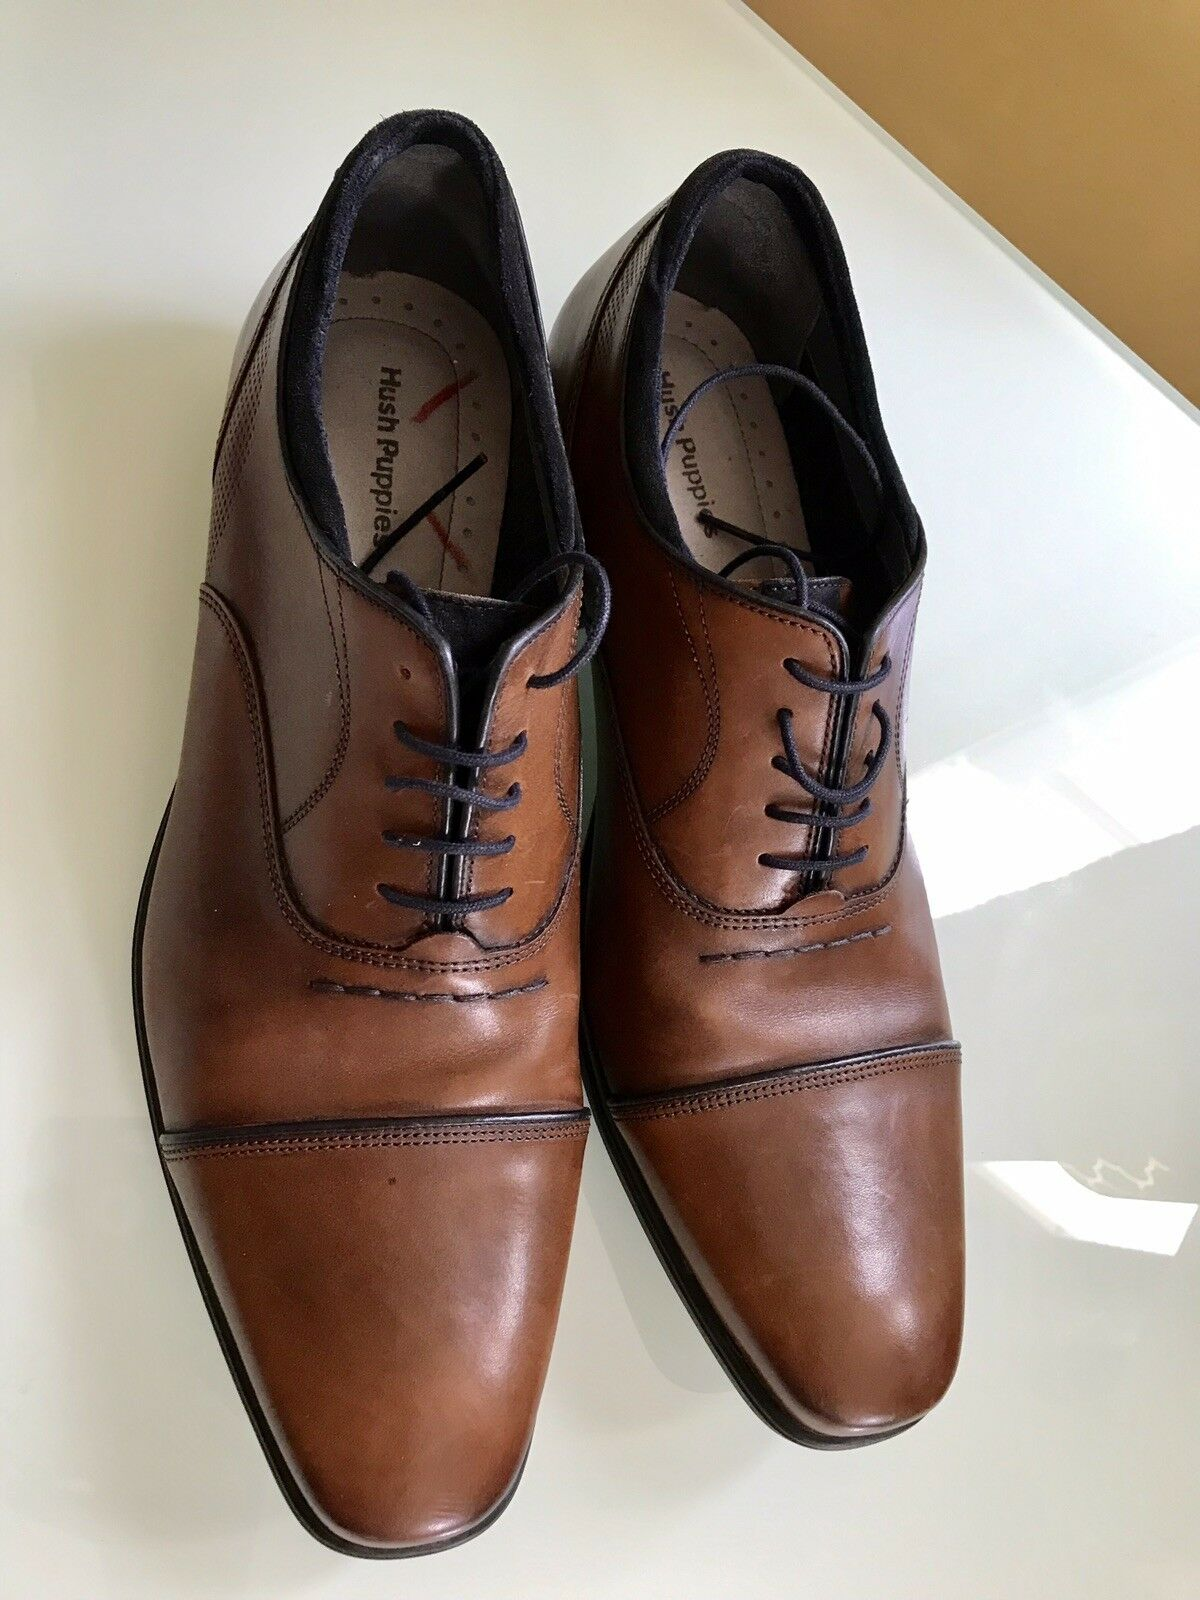 Hush Puppies Brown Leather Loafer Dress shoes Men's Sz 13 Lace Up